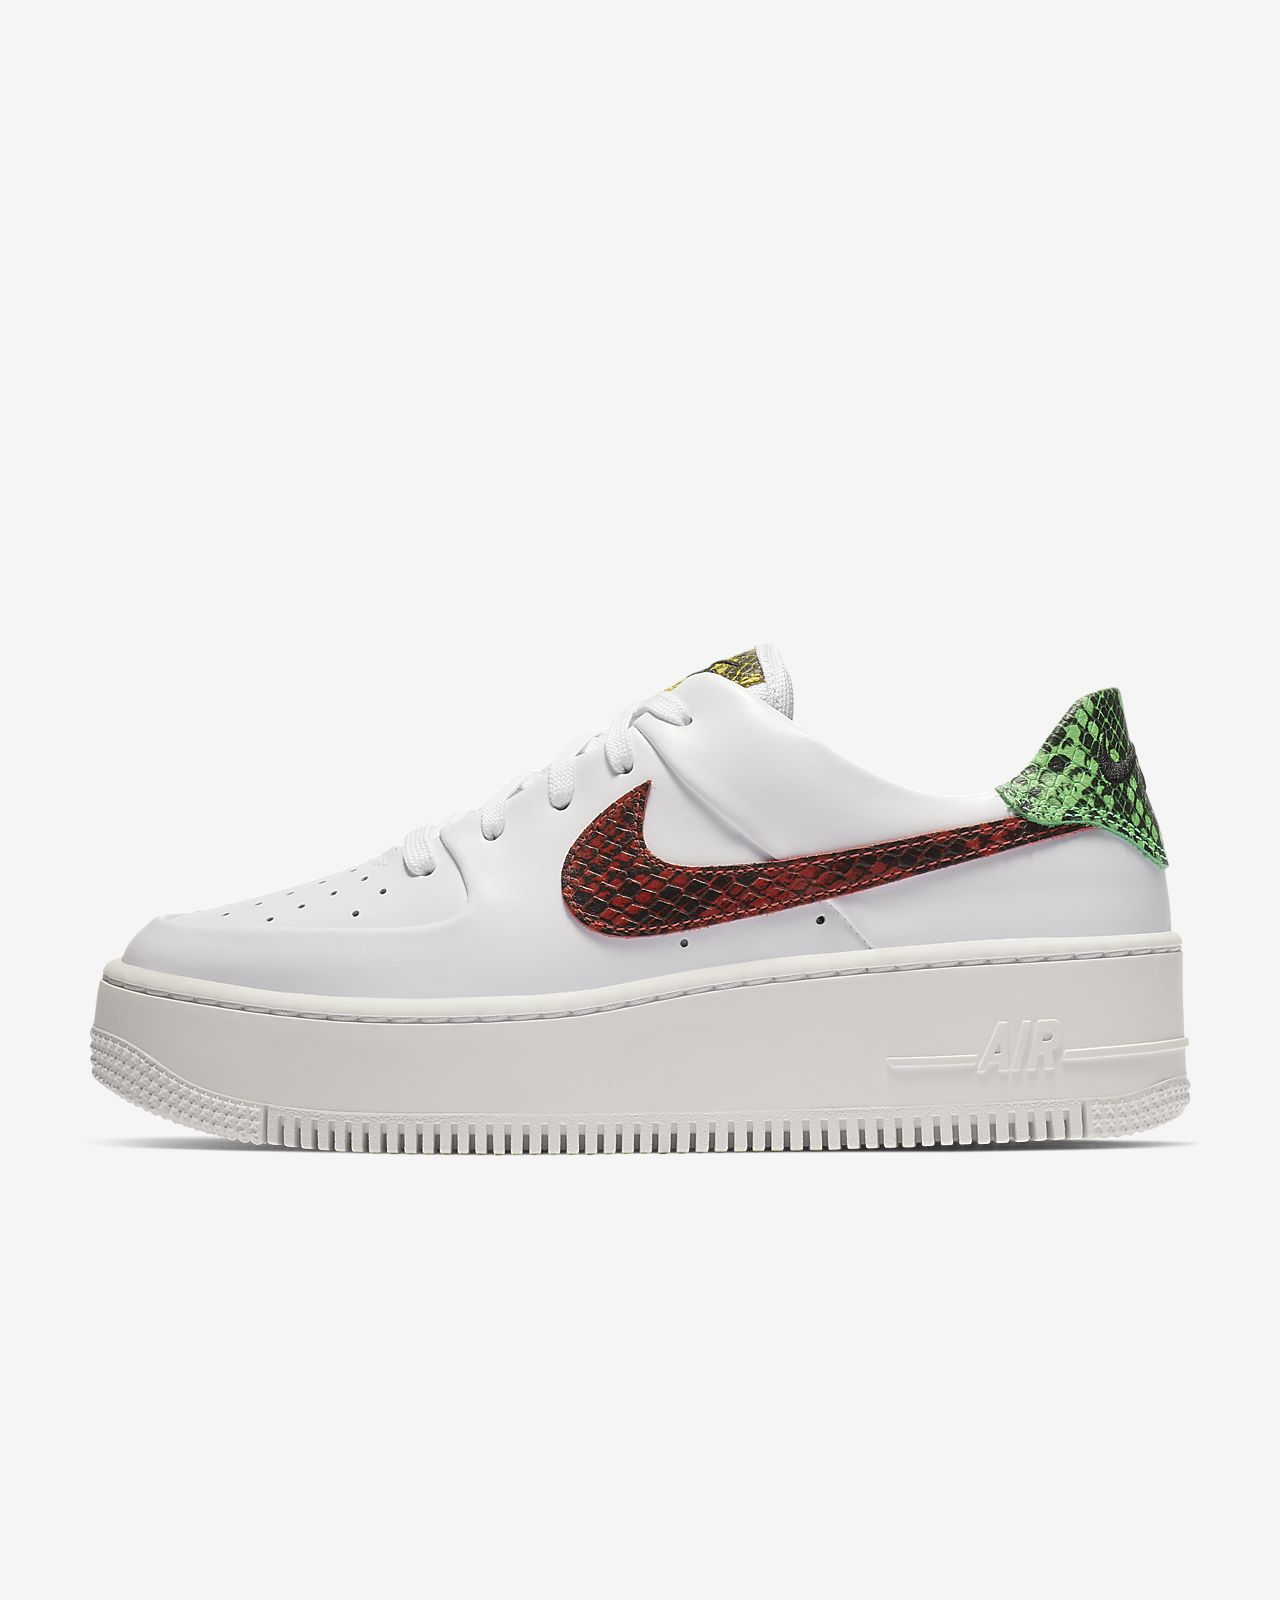 on sale b69f6 be254 Calzado para mujer Nike Air Force 1 Sage Low Premium Animal